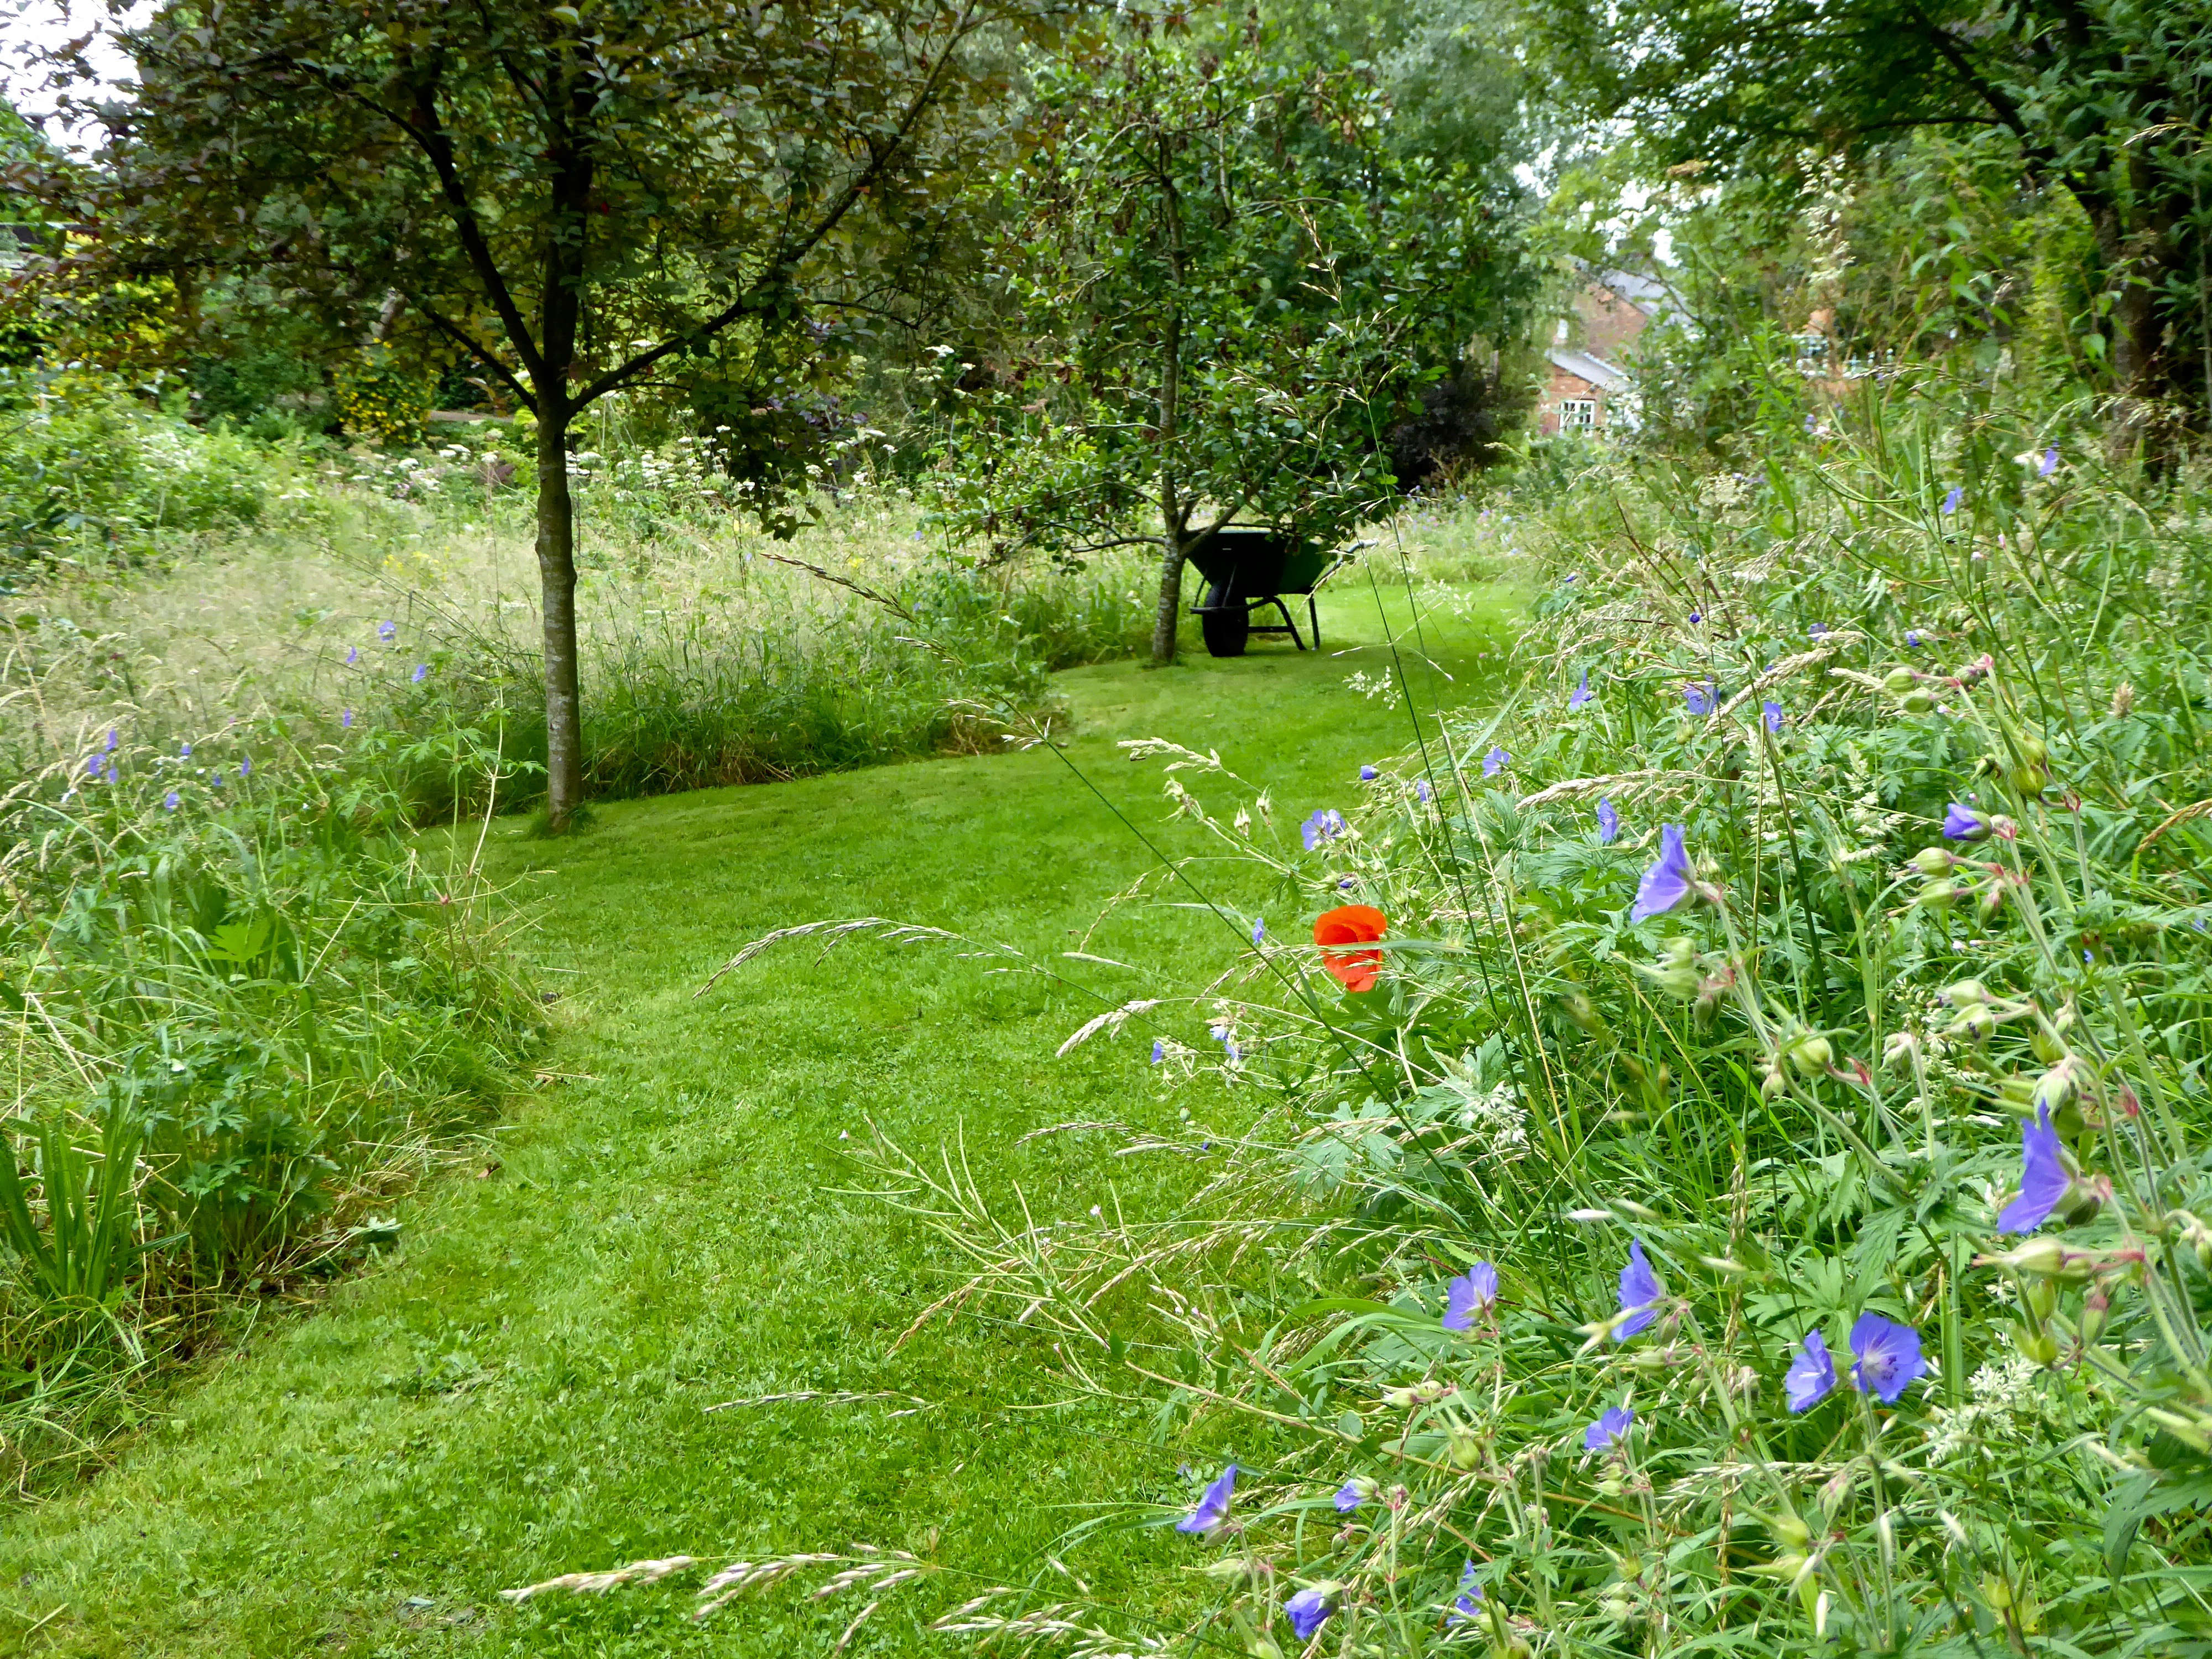 Garden Visit A Wildflower Meadow At The Edge Of An English